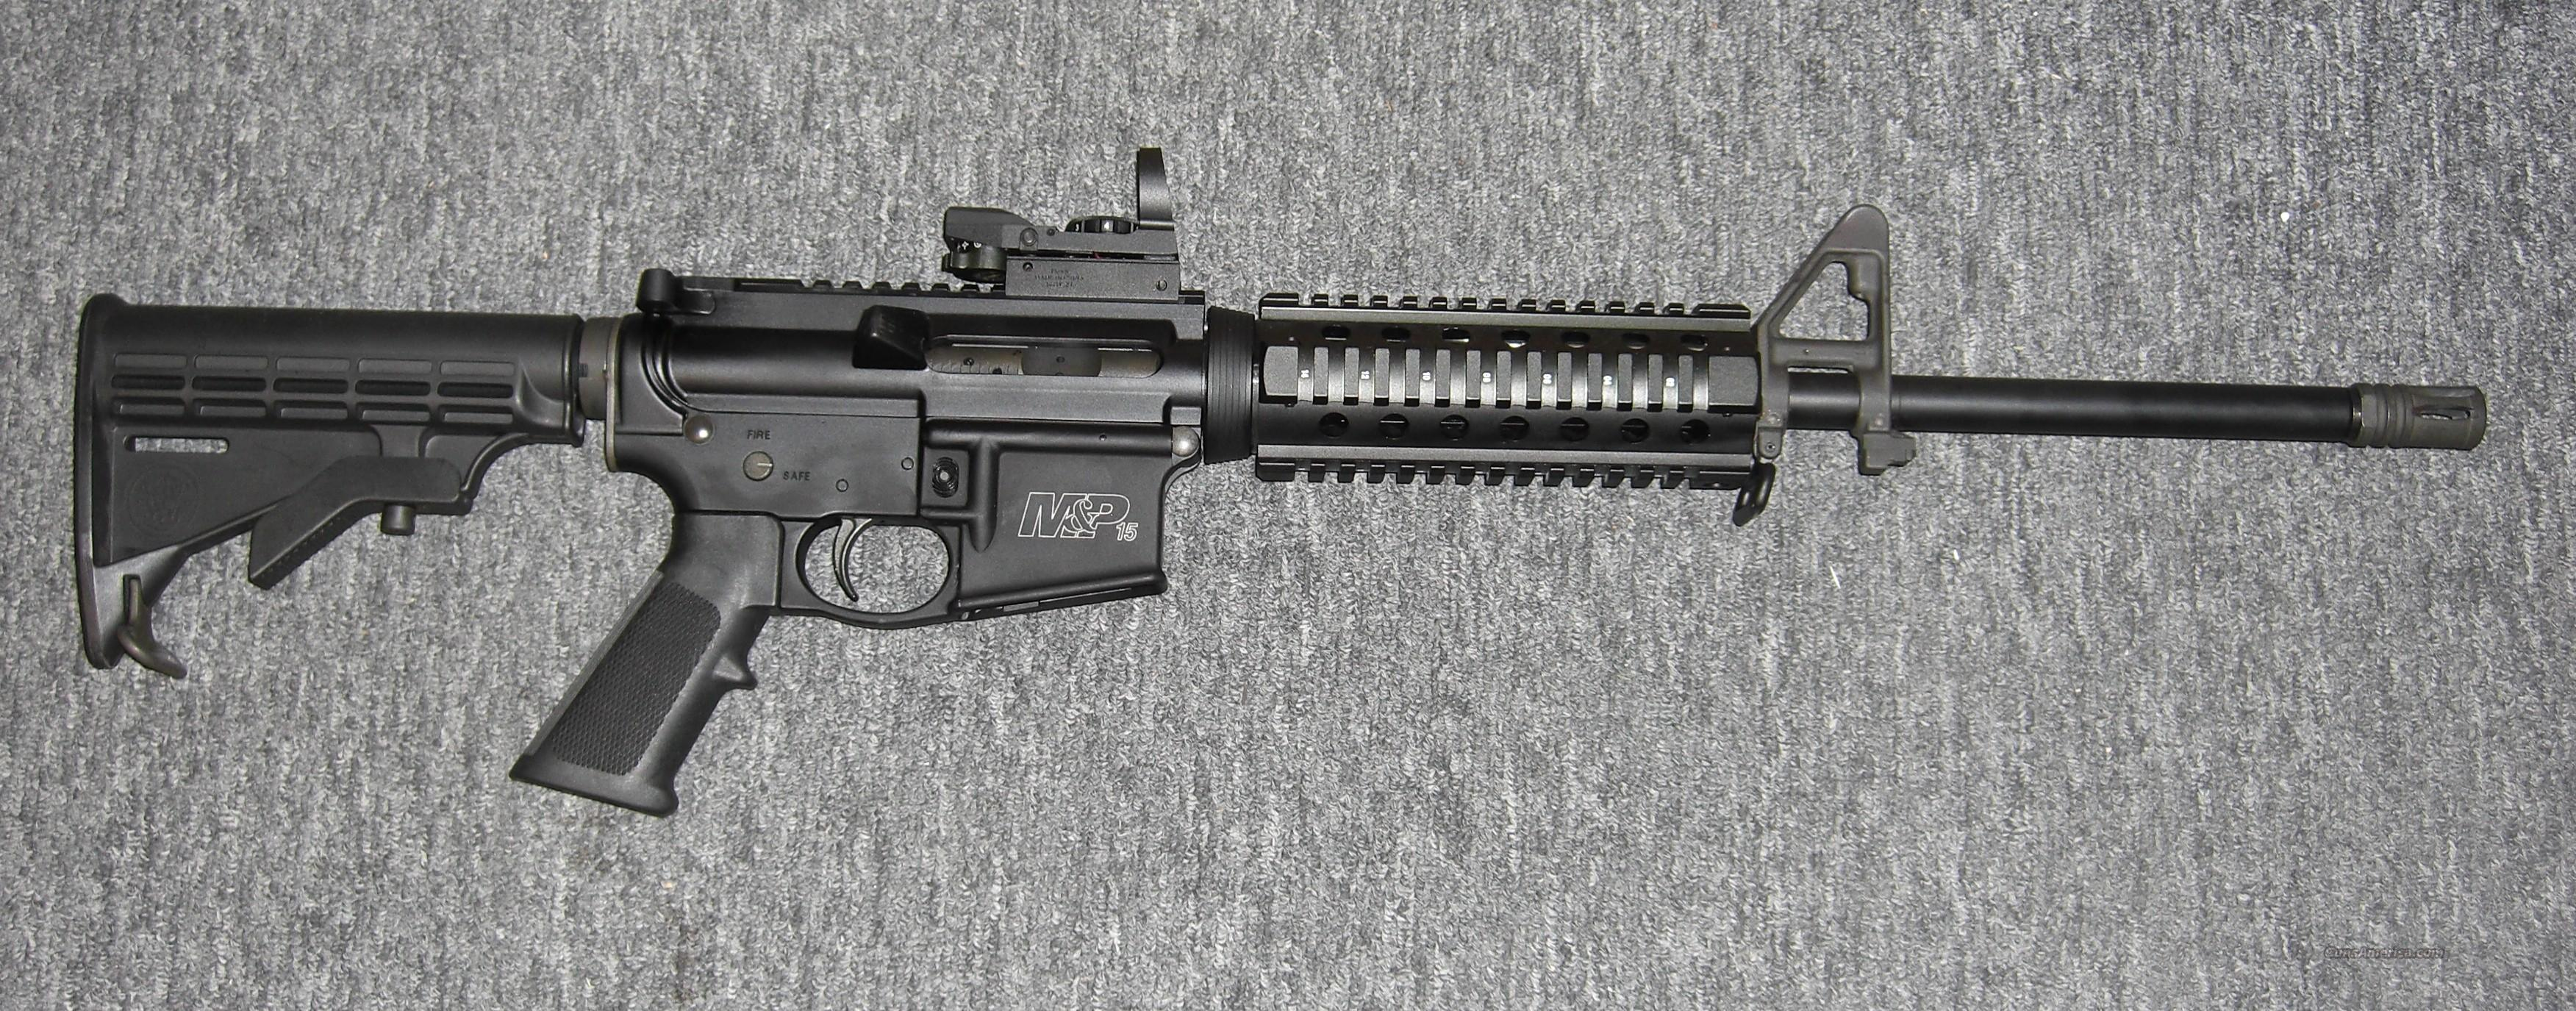 M & P 15 Sport  Guns > Rifles > Smith & Wesson Rifles > M&P